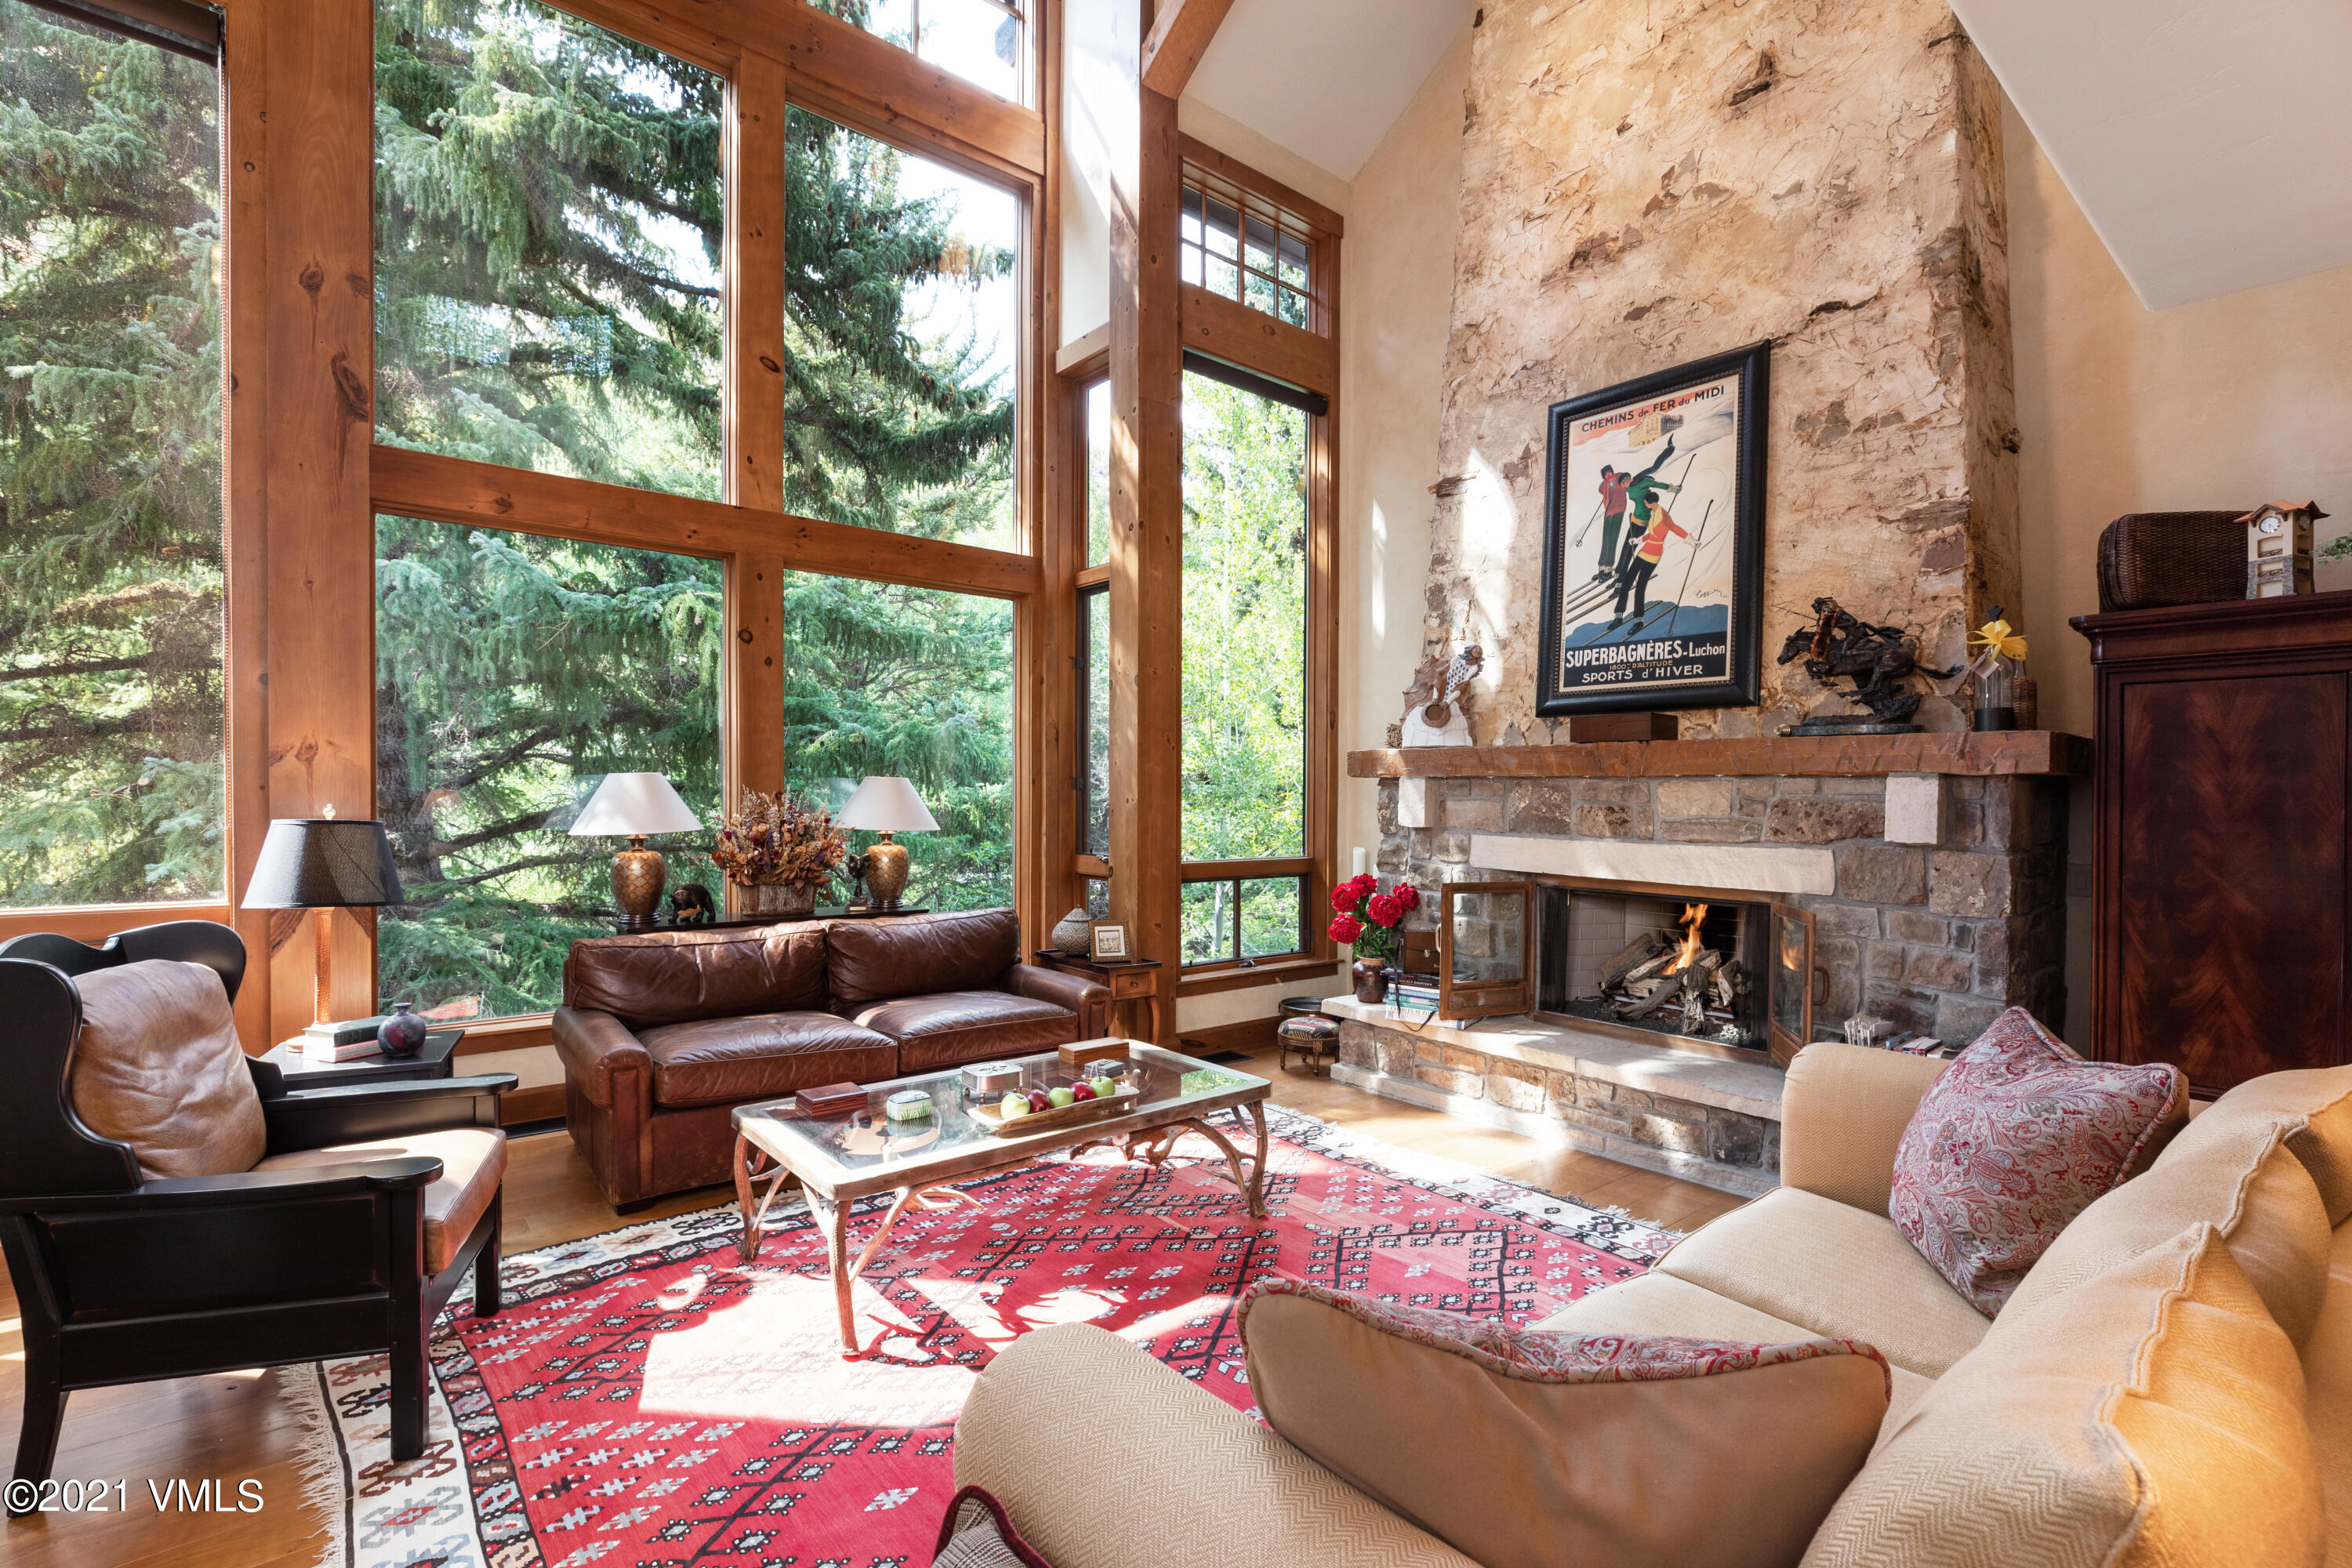 Enjoy the sounds of the creek and peaceful outdoor living from the serene deck setting off the back. This is a rare single family home located in the ski-in / ski-out Cresta neighborhood within the gates of Arrowhead. Featuring a master on the main level, a family room off the kitchen, stunning views from the huge living room windows, a lofted office and a recreational room down below. Offering both private fishing rights and ski access from the home, this is a perfect year-round retreat.